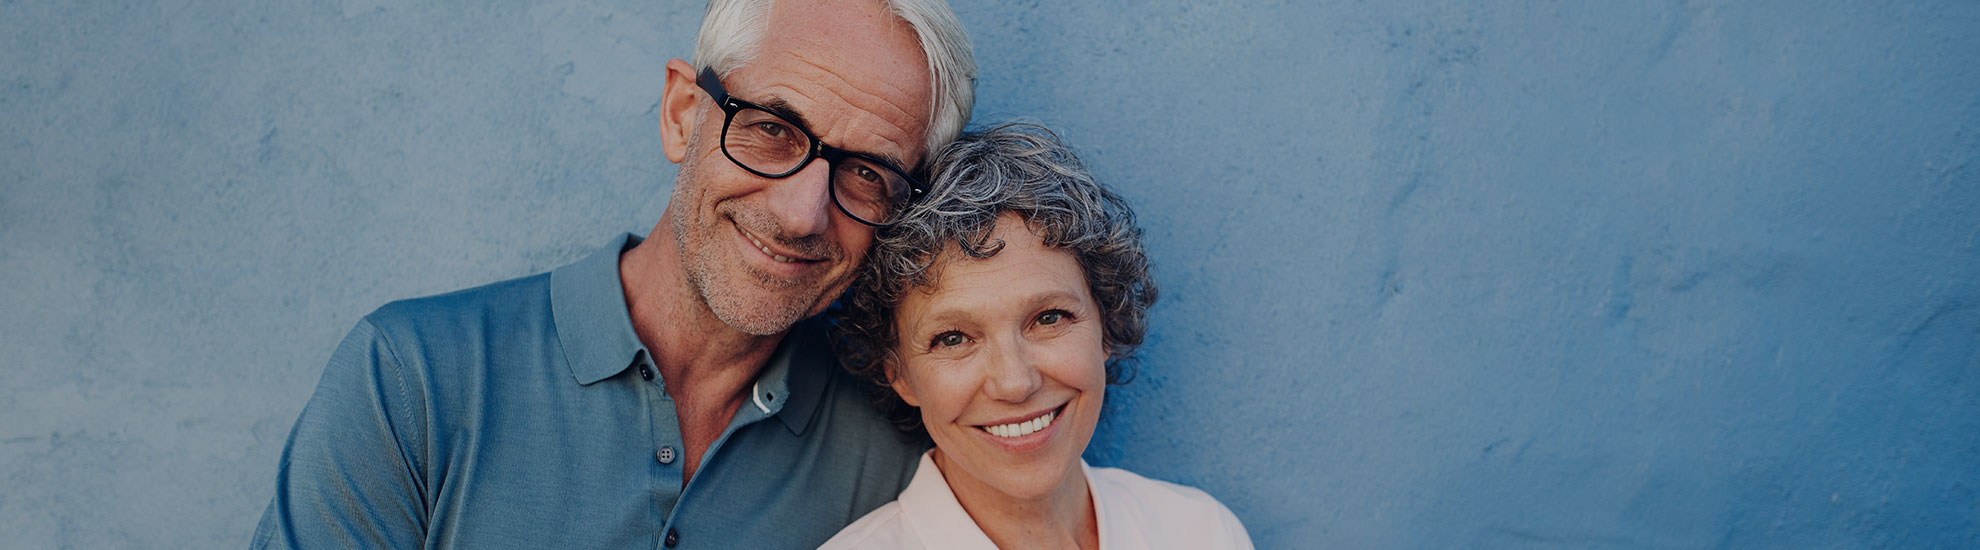 mature couple wearing glasses